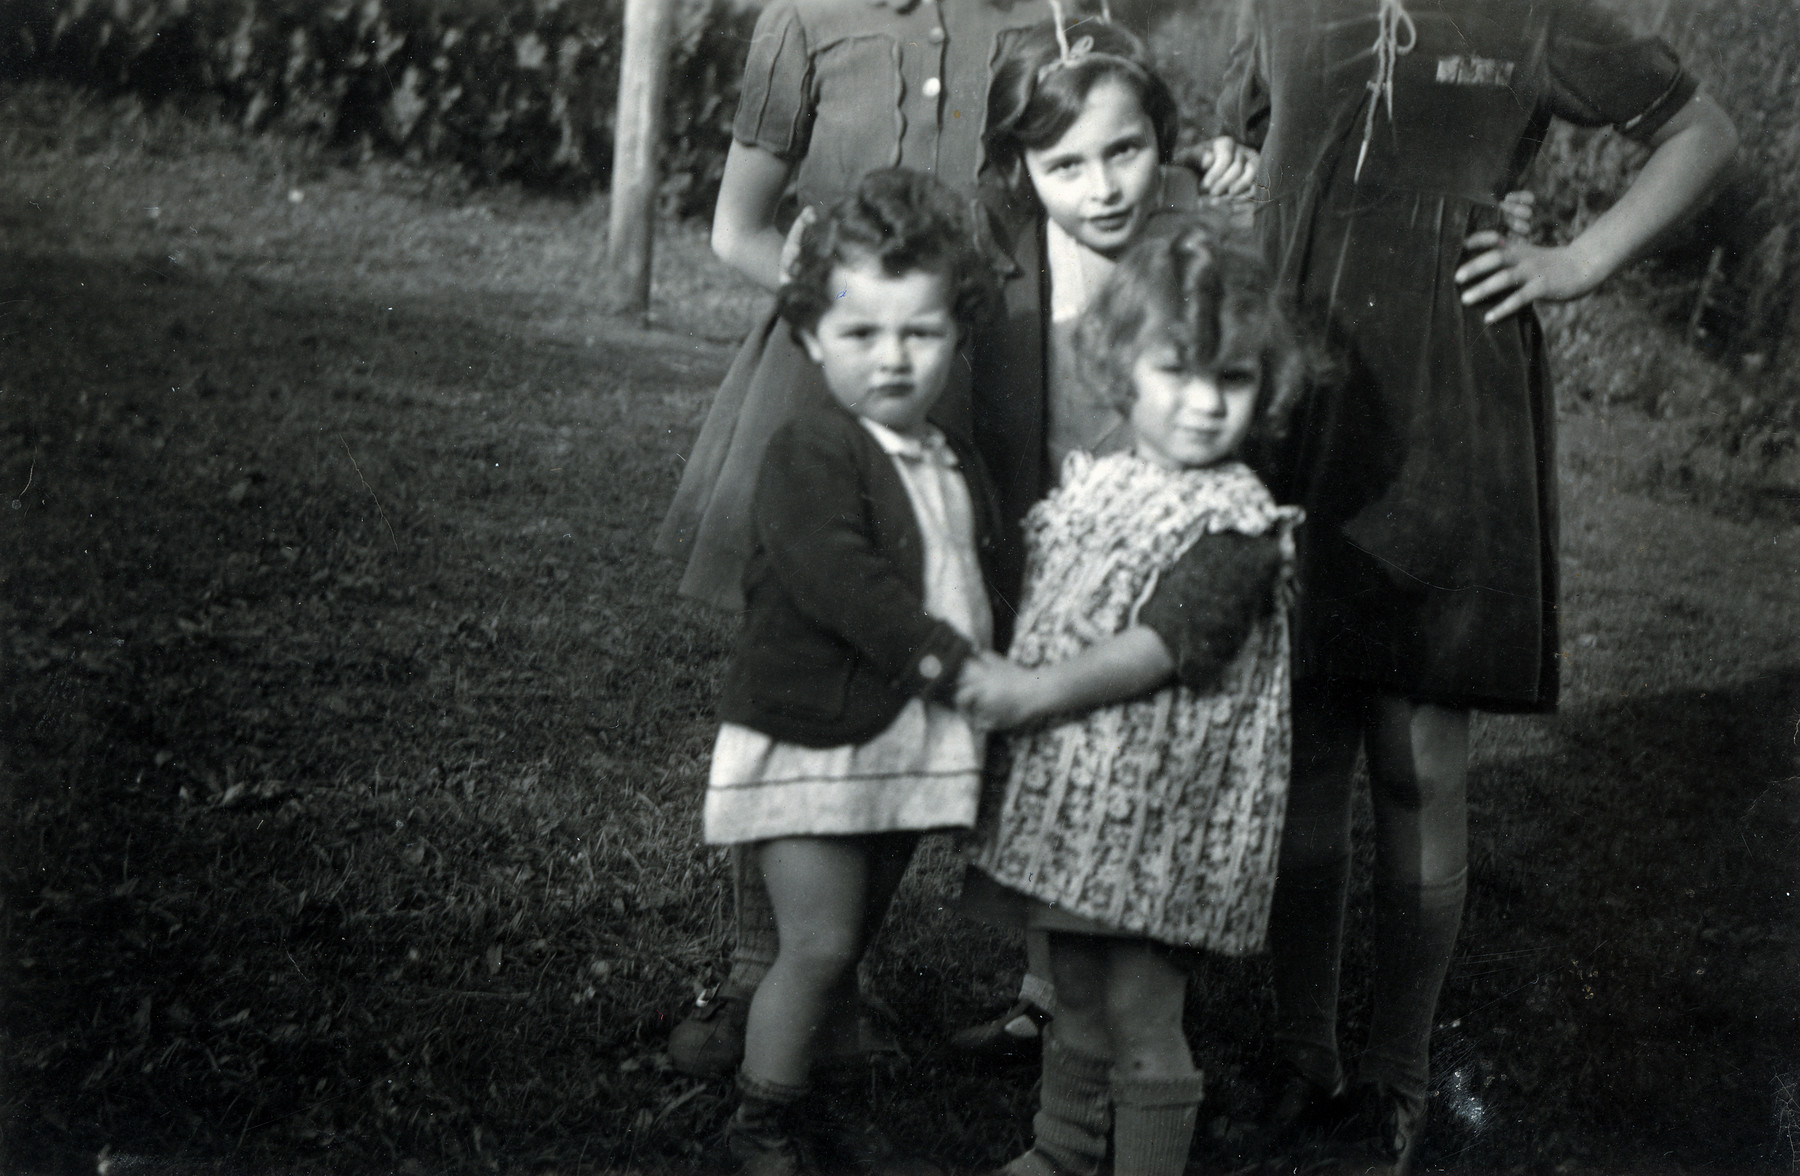 Mirjam Ermann stands behind her sister Suzanne (left) and another young girl in the children's home in Ascona.